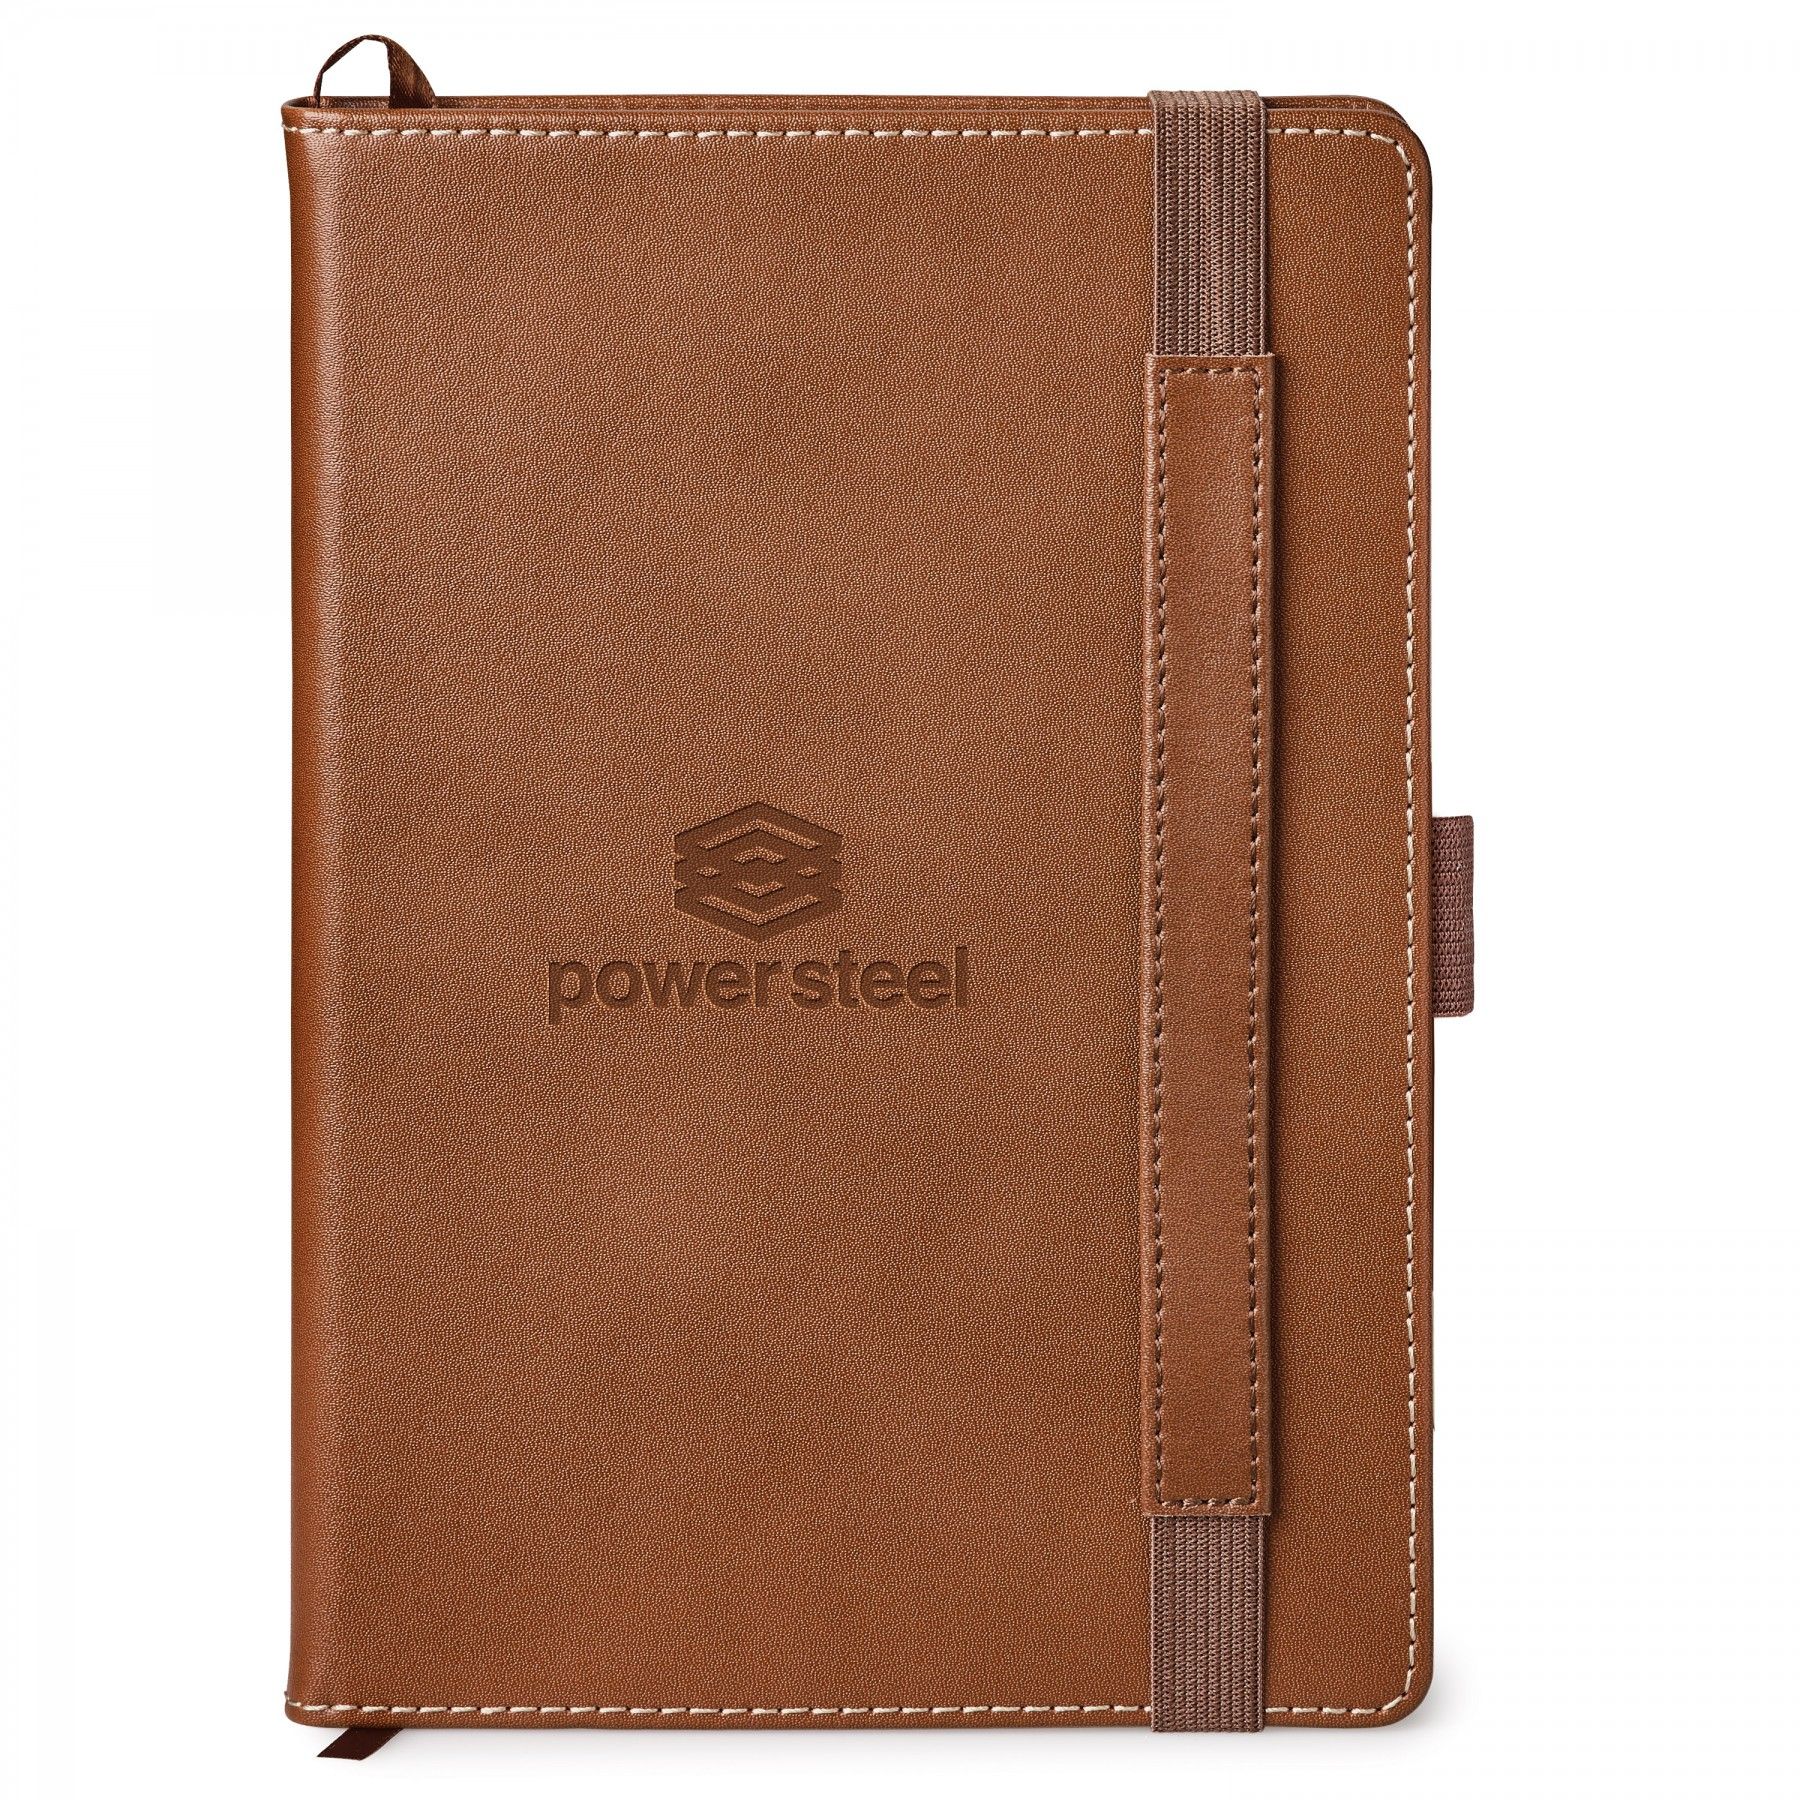 Nathan Hard Cover Journal, ST4682, Debossed Logo